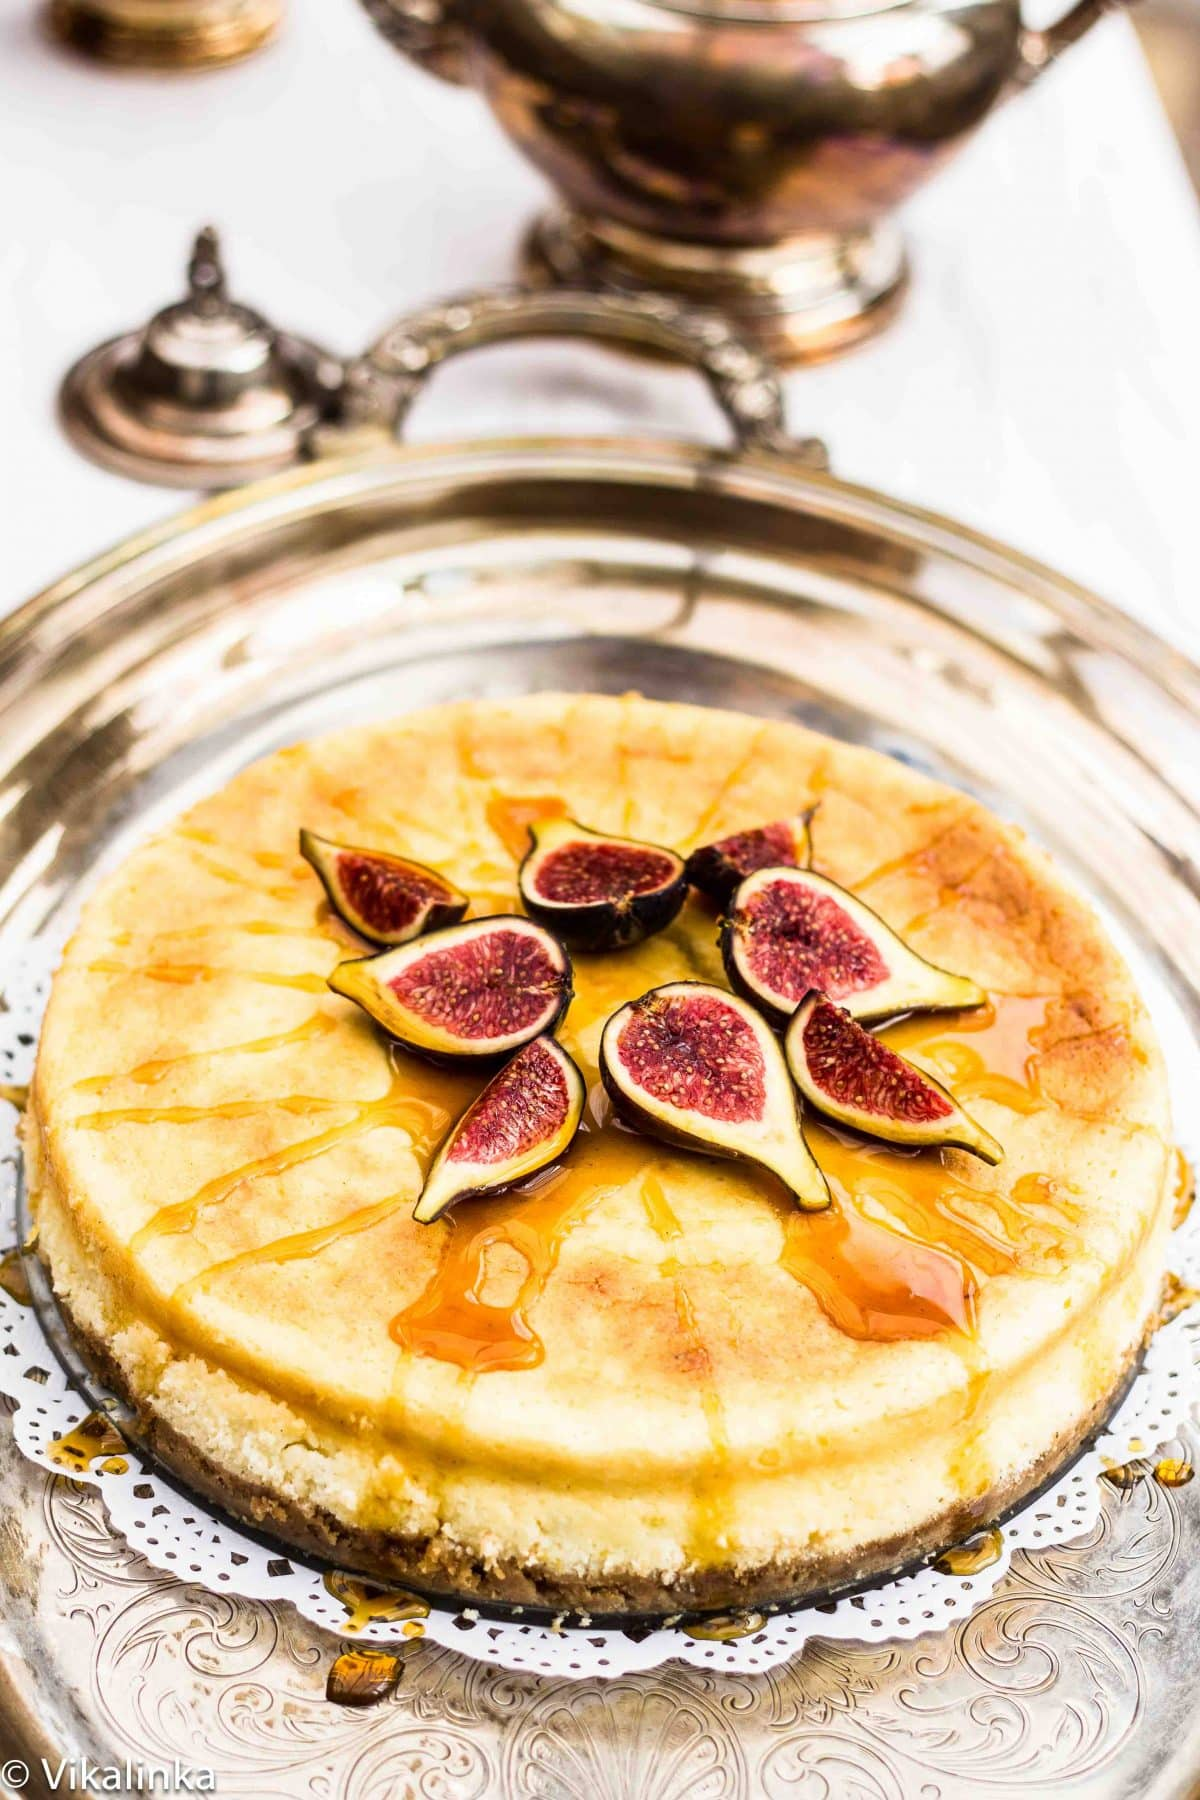 Lemon Vanilla Cheesecake with Figs and Honey